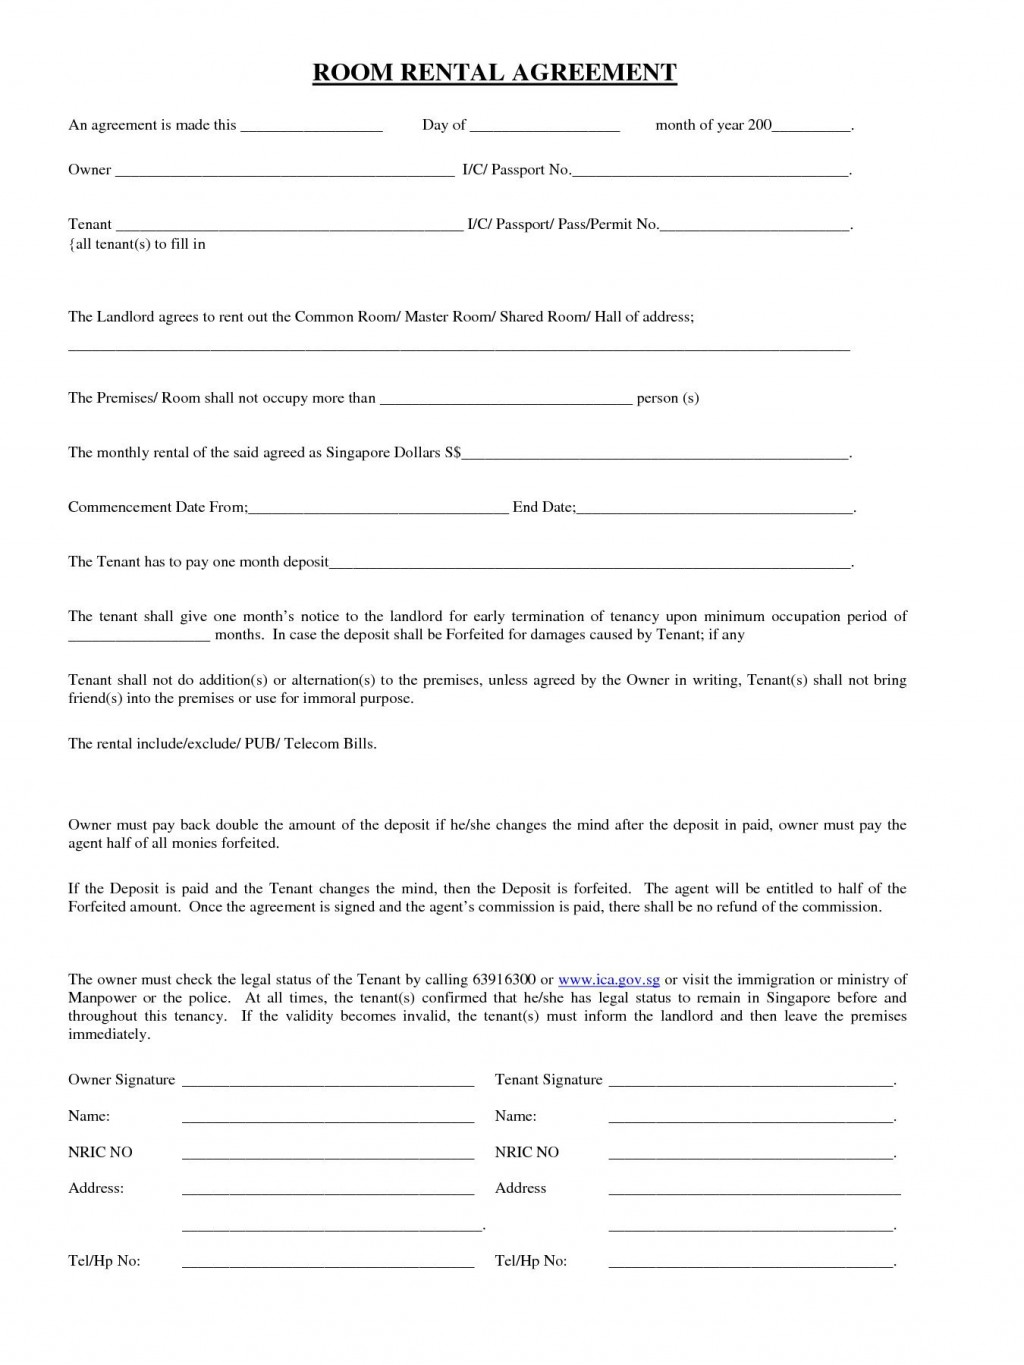 008 Exceptional Room Rental Agreement Template Uk Free High Def  Word DocLarge